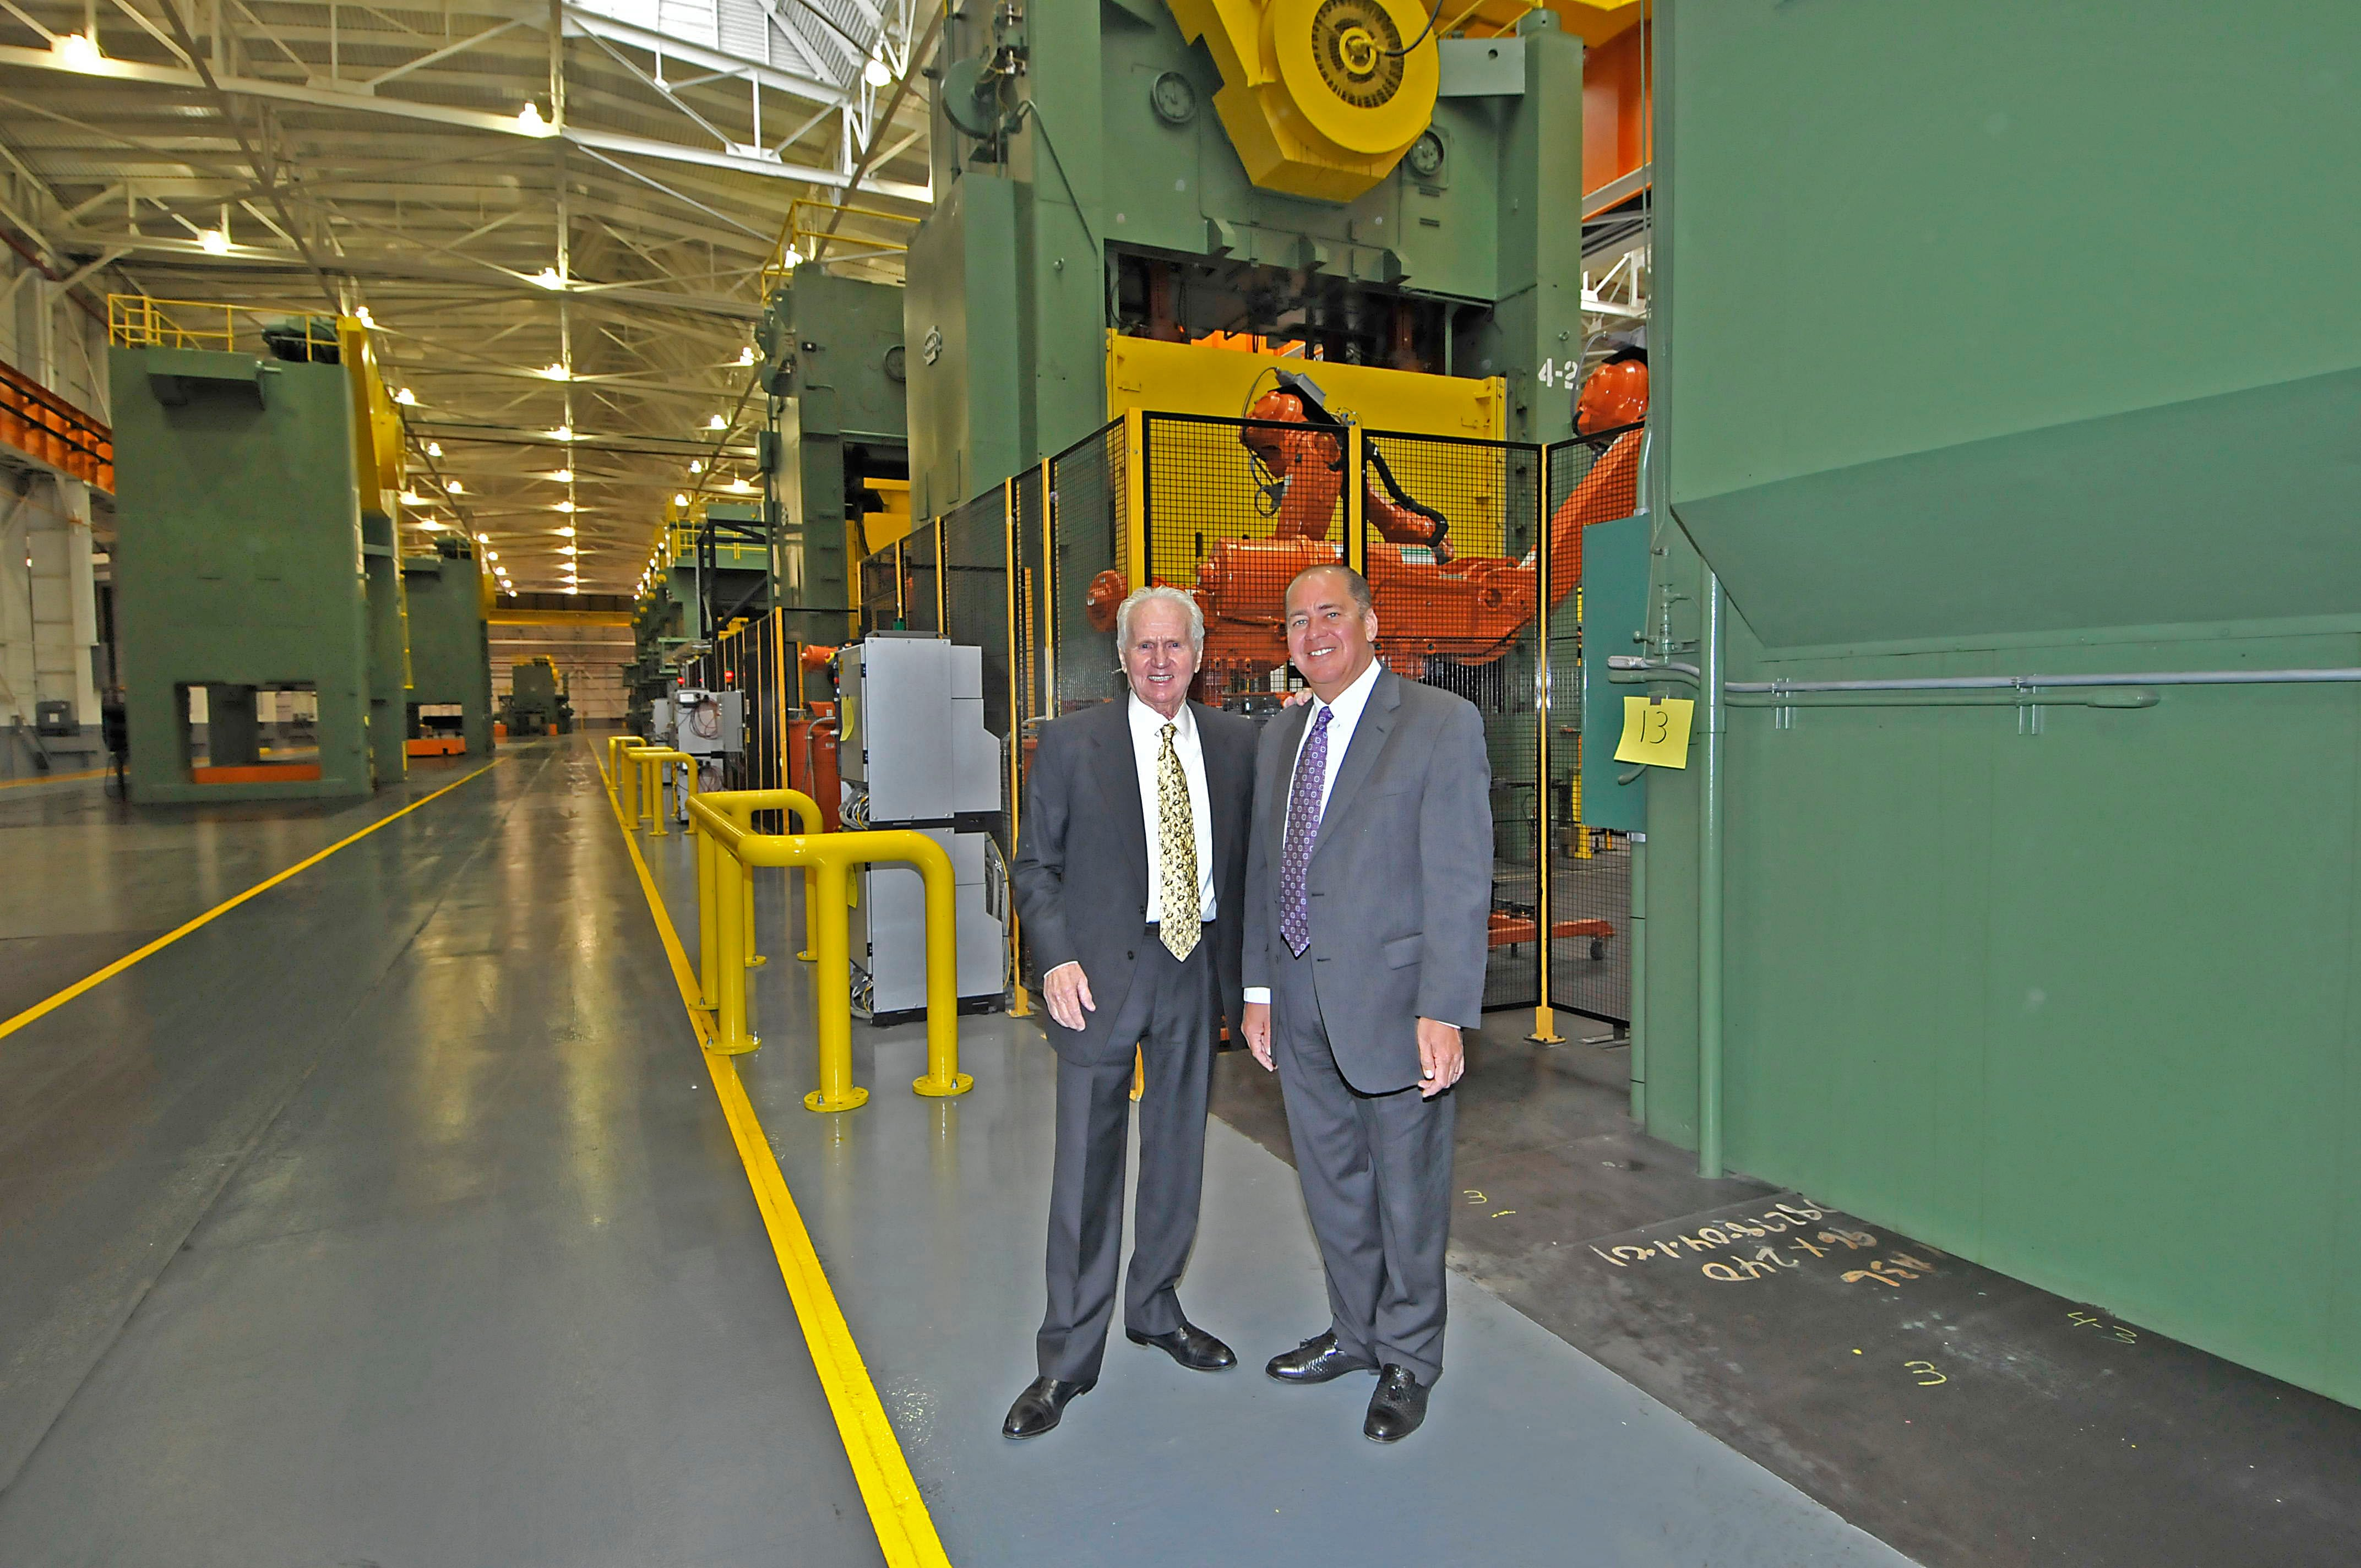 Photo courtesy of Gov. Earl Ray Tomblin's office / Ray Park, chairman of the Park Corp., and Gov. Earl Ray Tomblin tour the former South Charleston Stamping and Manufacturing Plant.